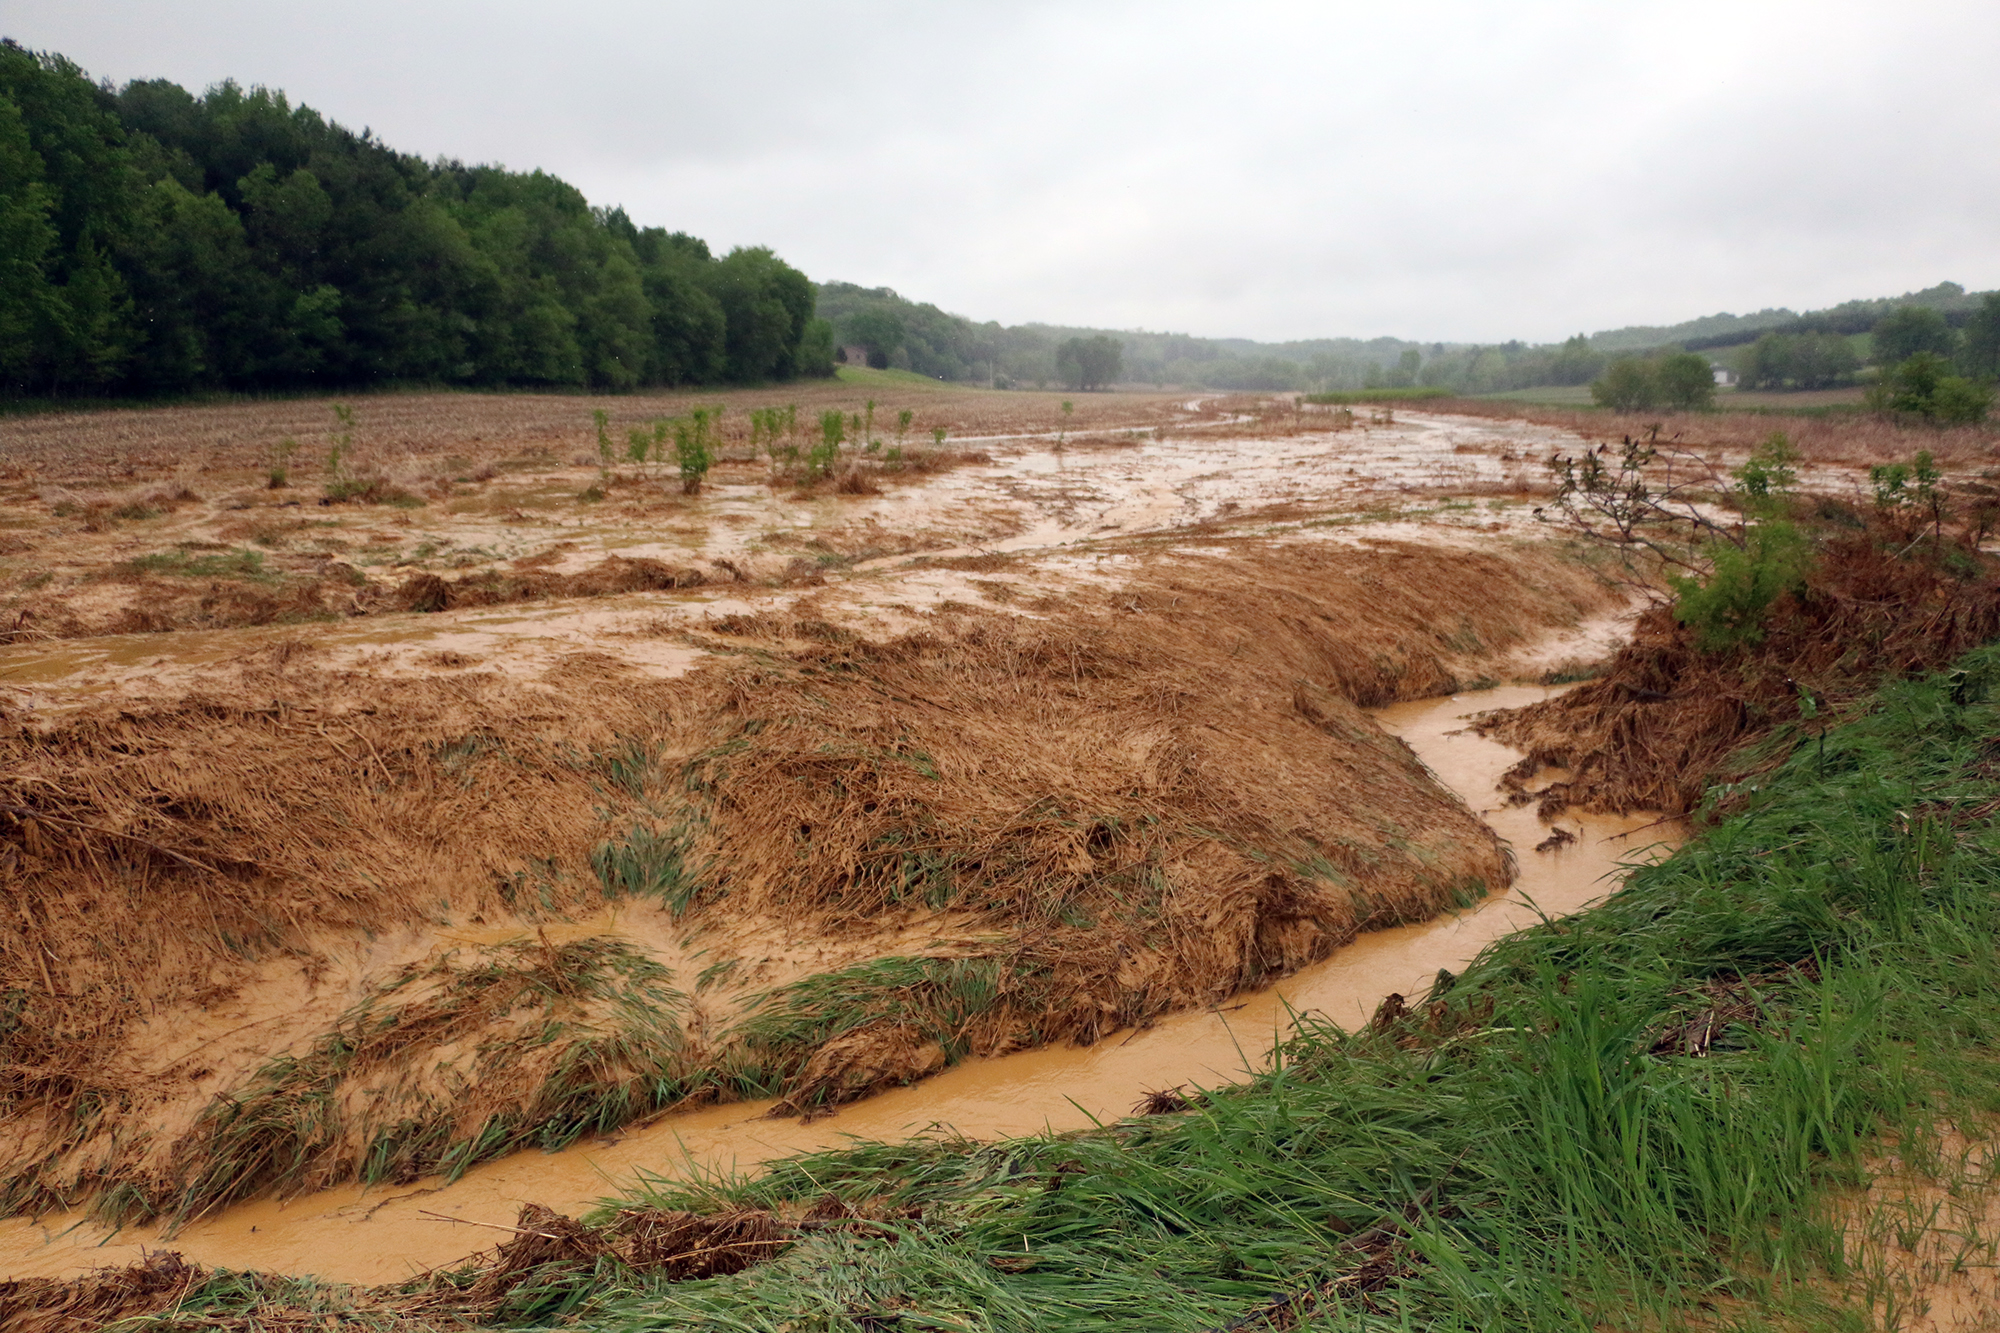 Tests Show Toxic Heavy Metals Near Wisconsin Sand Mine Spill ...